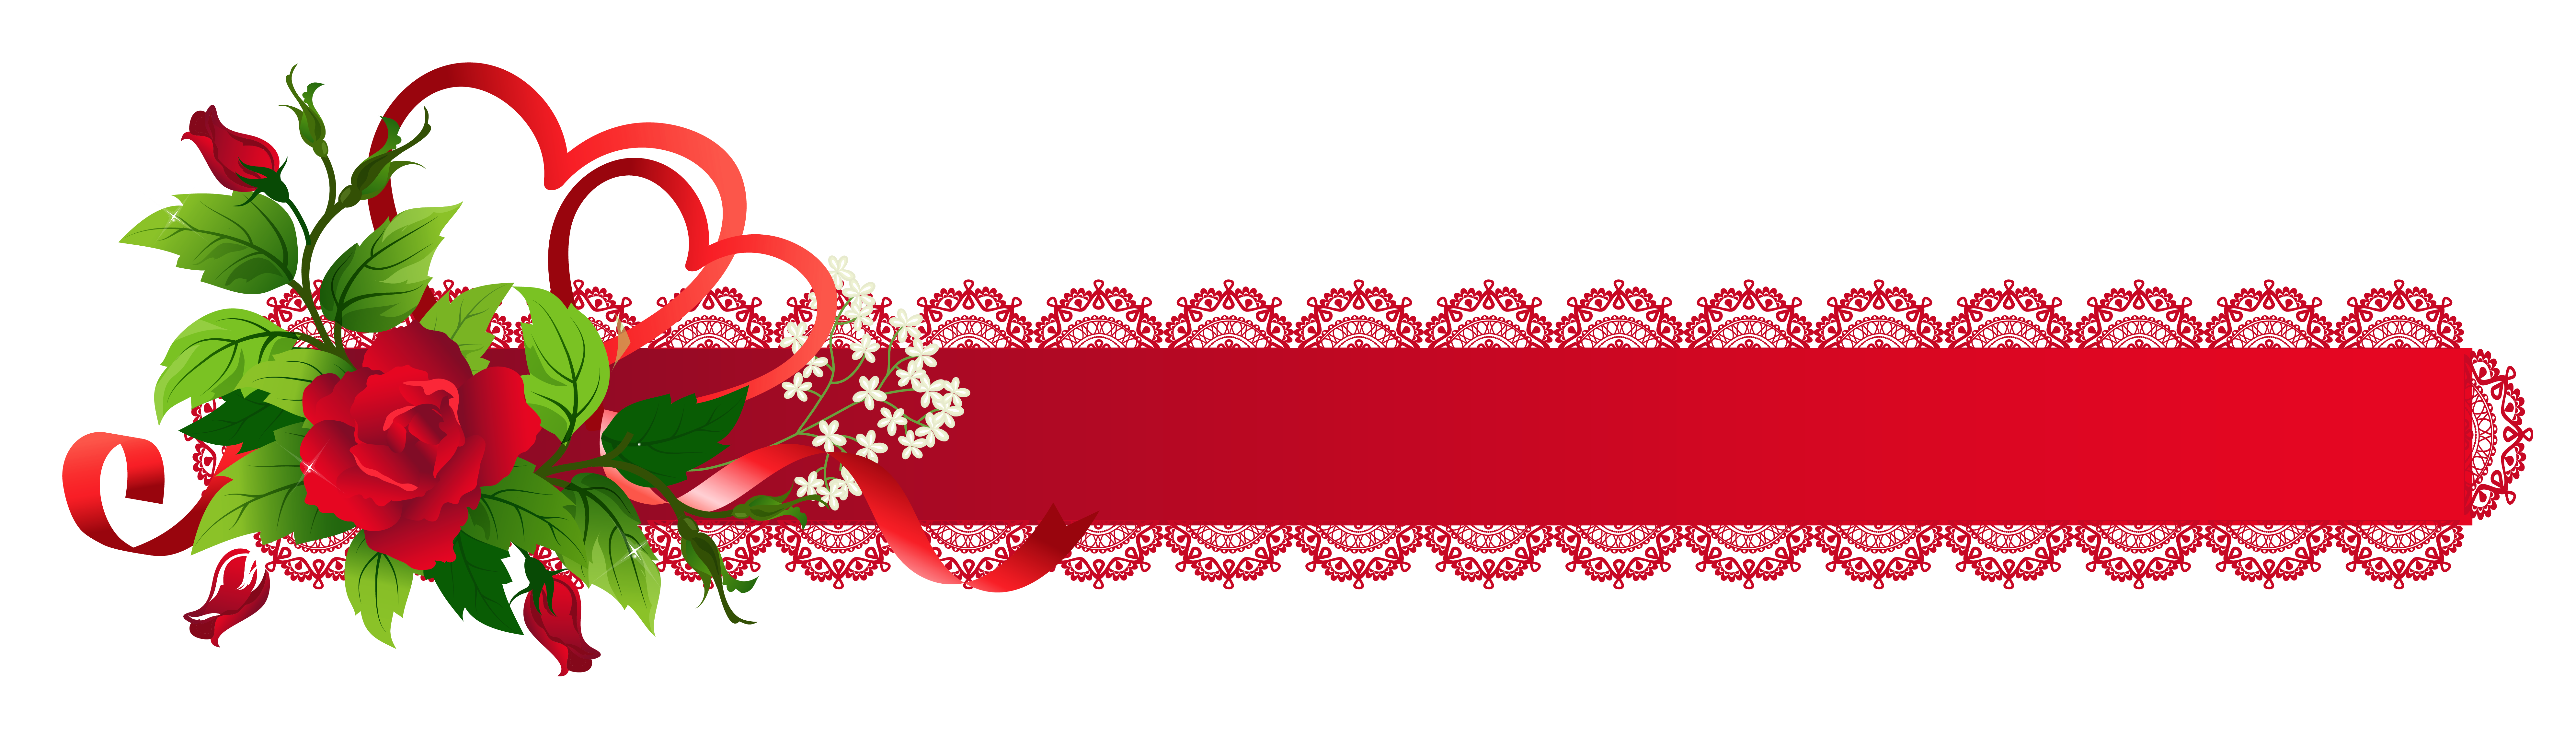 Christmas ribbon border png. Red deco with rose